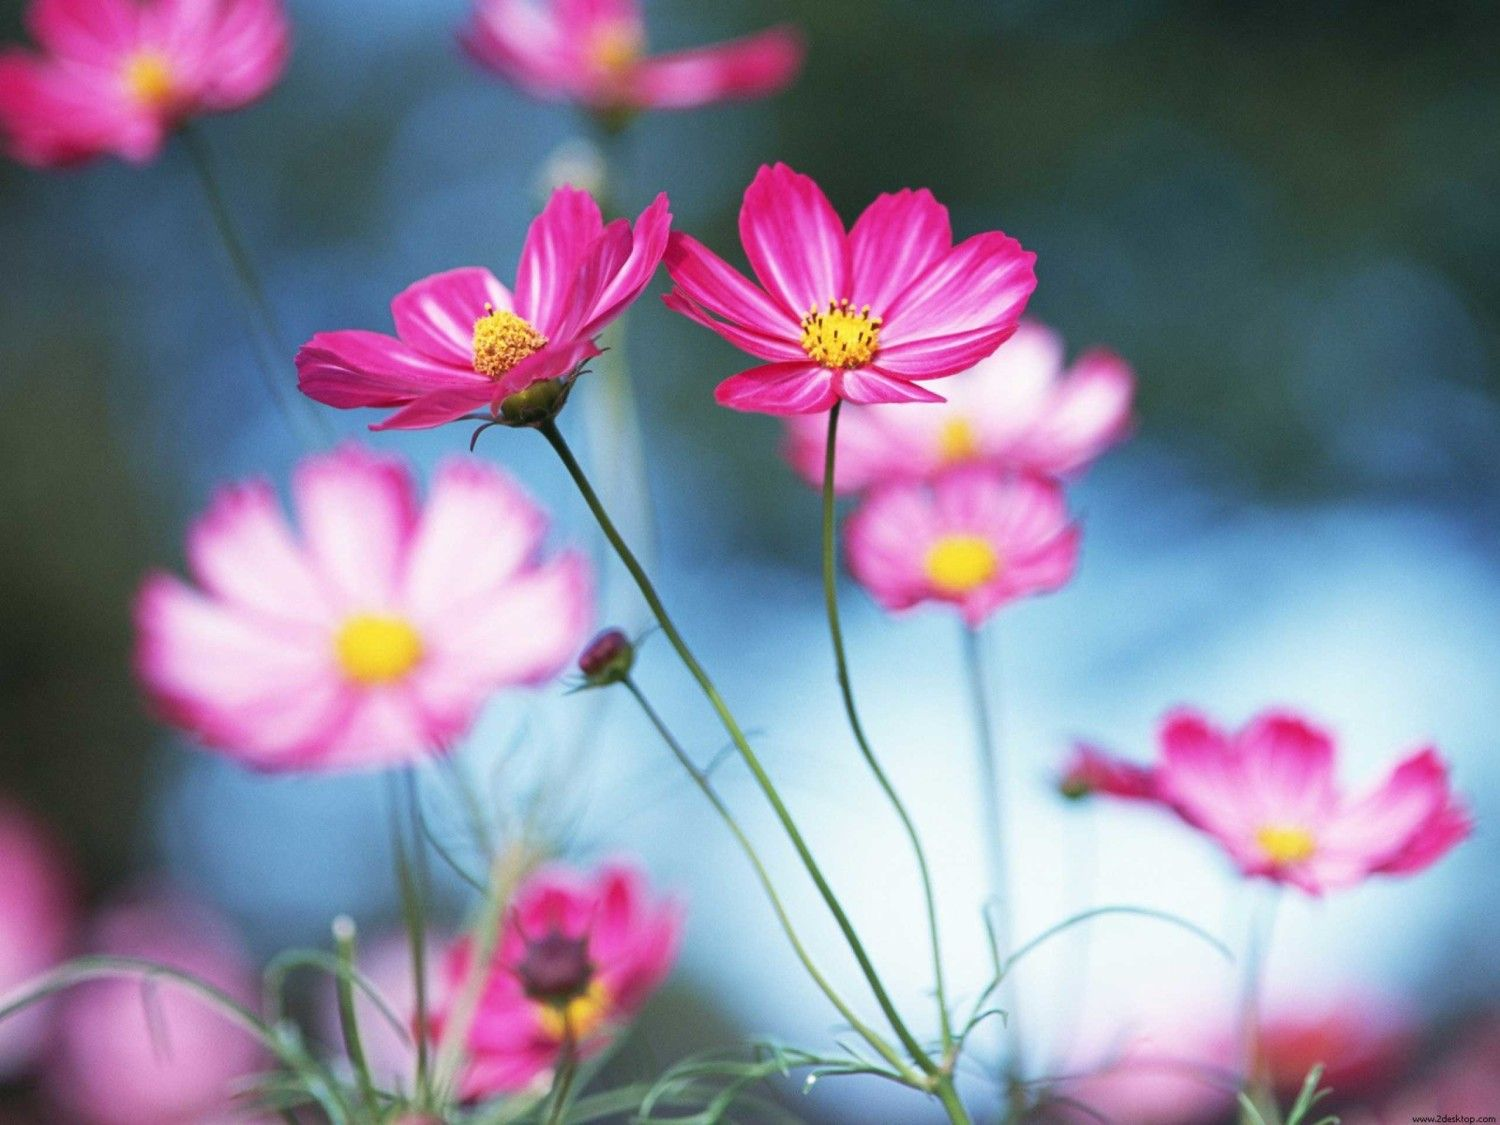 Cosmos Flower Meaning Flower Meanings Pictures And Photos Cosmos Flowers Flowers Photography Beautiful Flowers Pictures